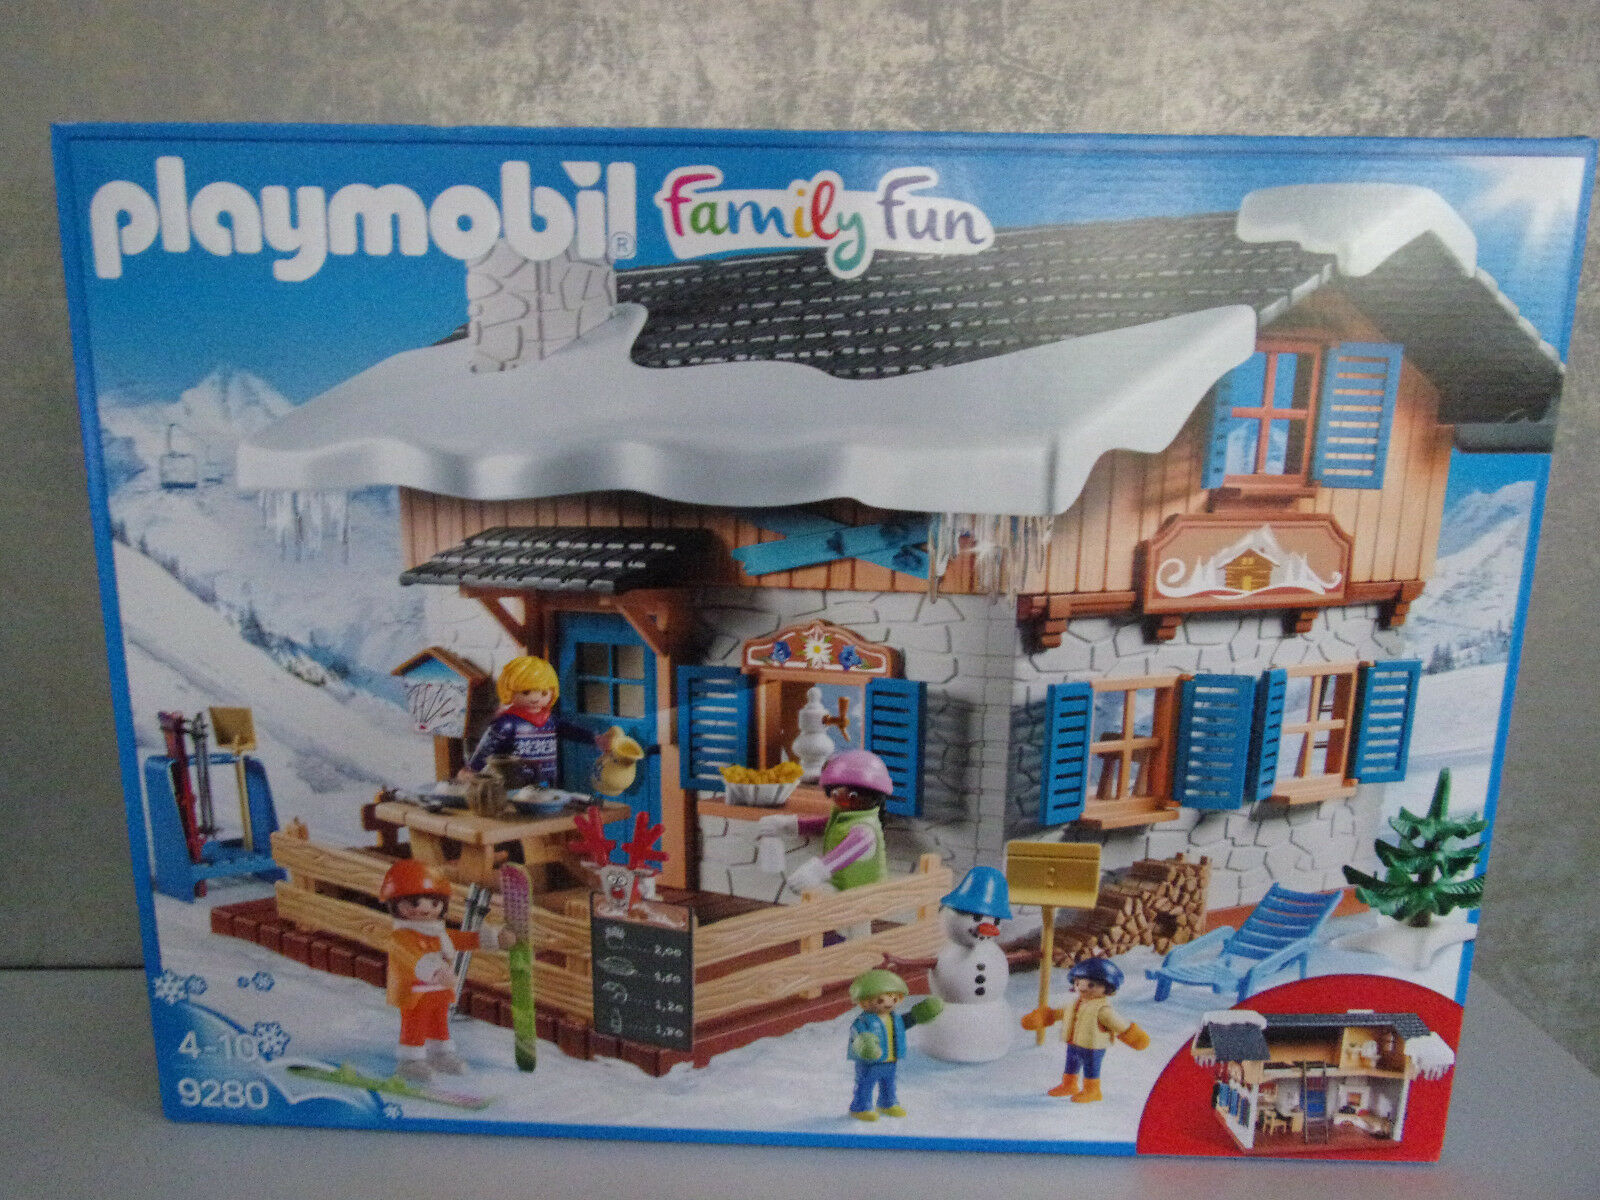 best playmobil ski deals compare prices on dealsancouk - Playmobil Ski